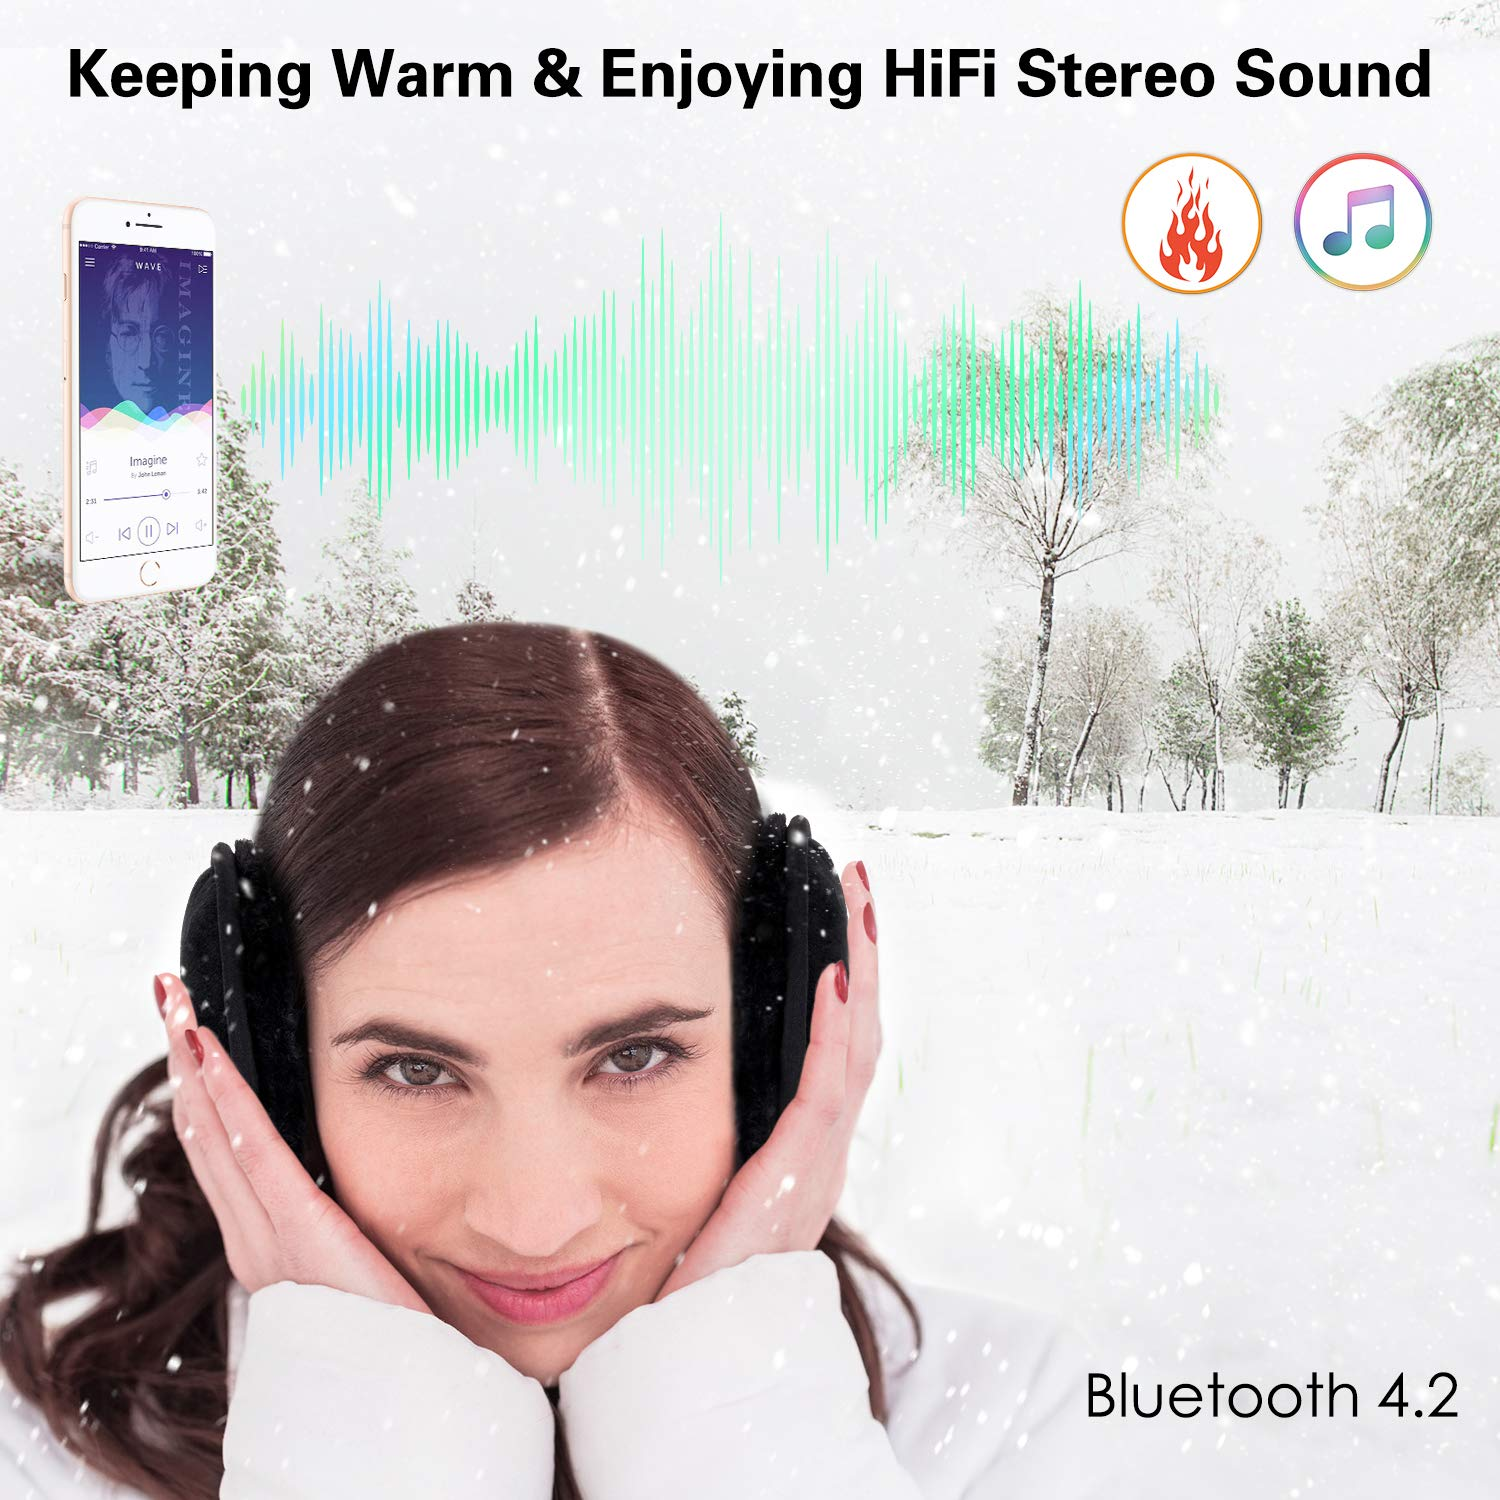 Bluetooth Ear Warmer Headphones,ink-topoint Wireless Over-Ear Hi-Fi Stereo Music Earmuffs,Handfree Headset with Built-in Speaker Unisex Ear Warmer,Winter Ear Muffs for Walking,Running,Indoor Outdoors